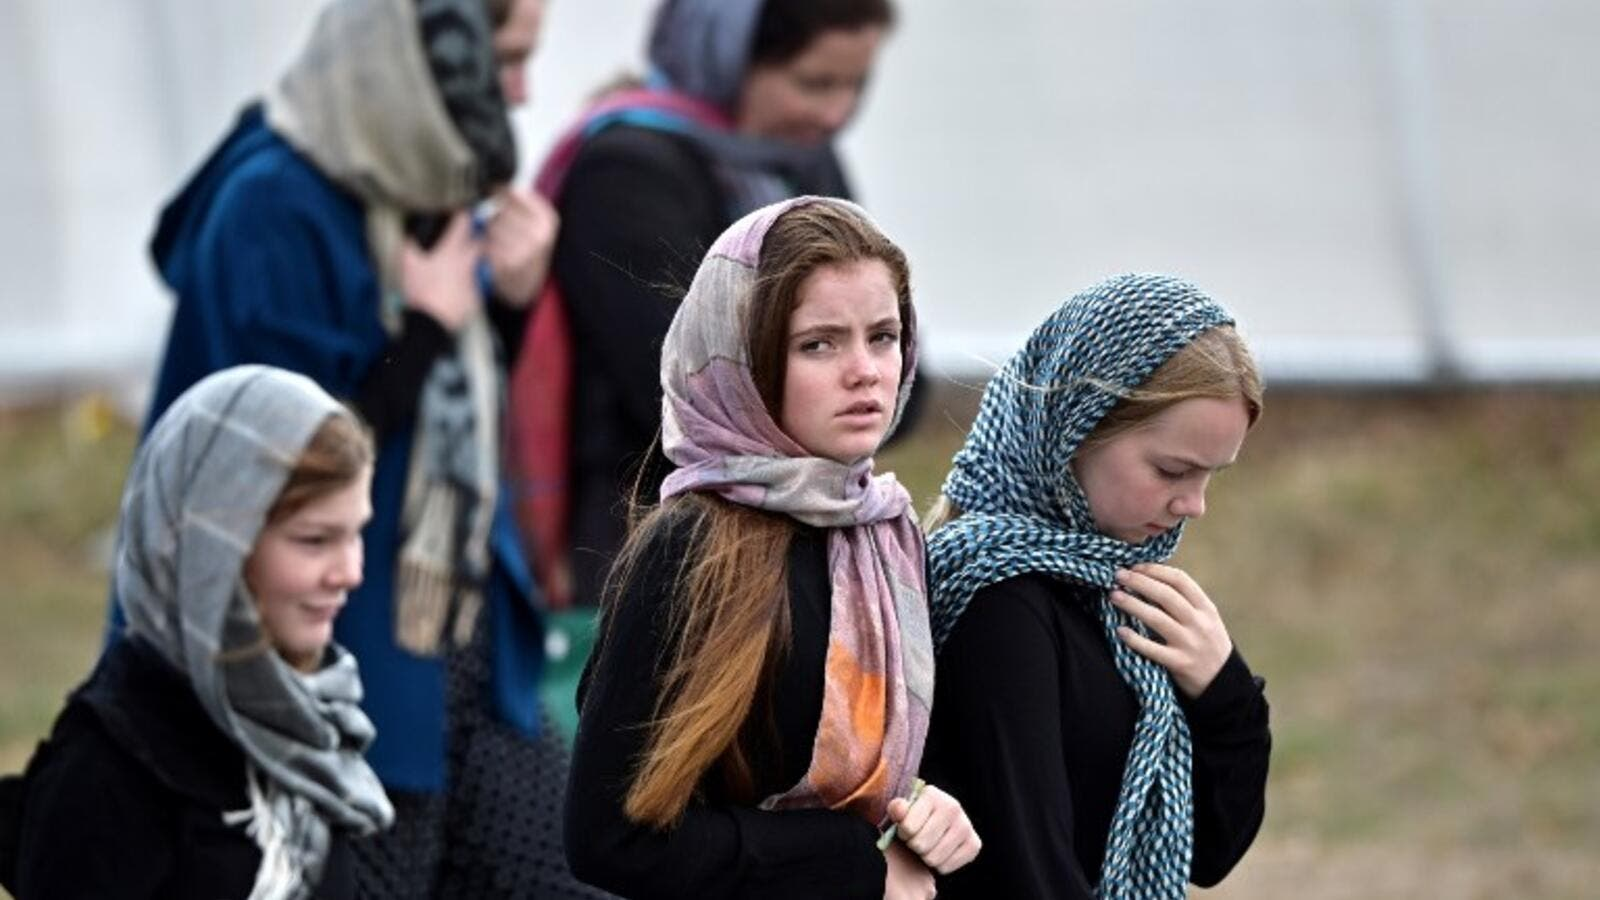 Residents and schoolchildren wearing headscarves arrive for the funeral of those killed in New Zealand's twin mosque attacks at Memorial Park cemetery in Christchurch on March 21, 2019. (AFP/ File)